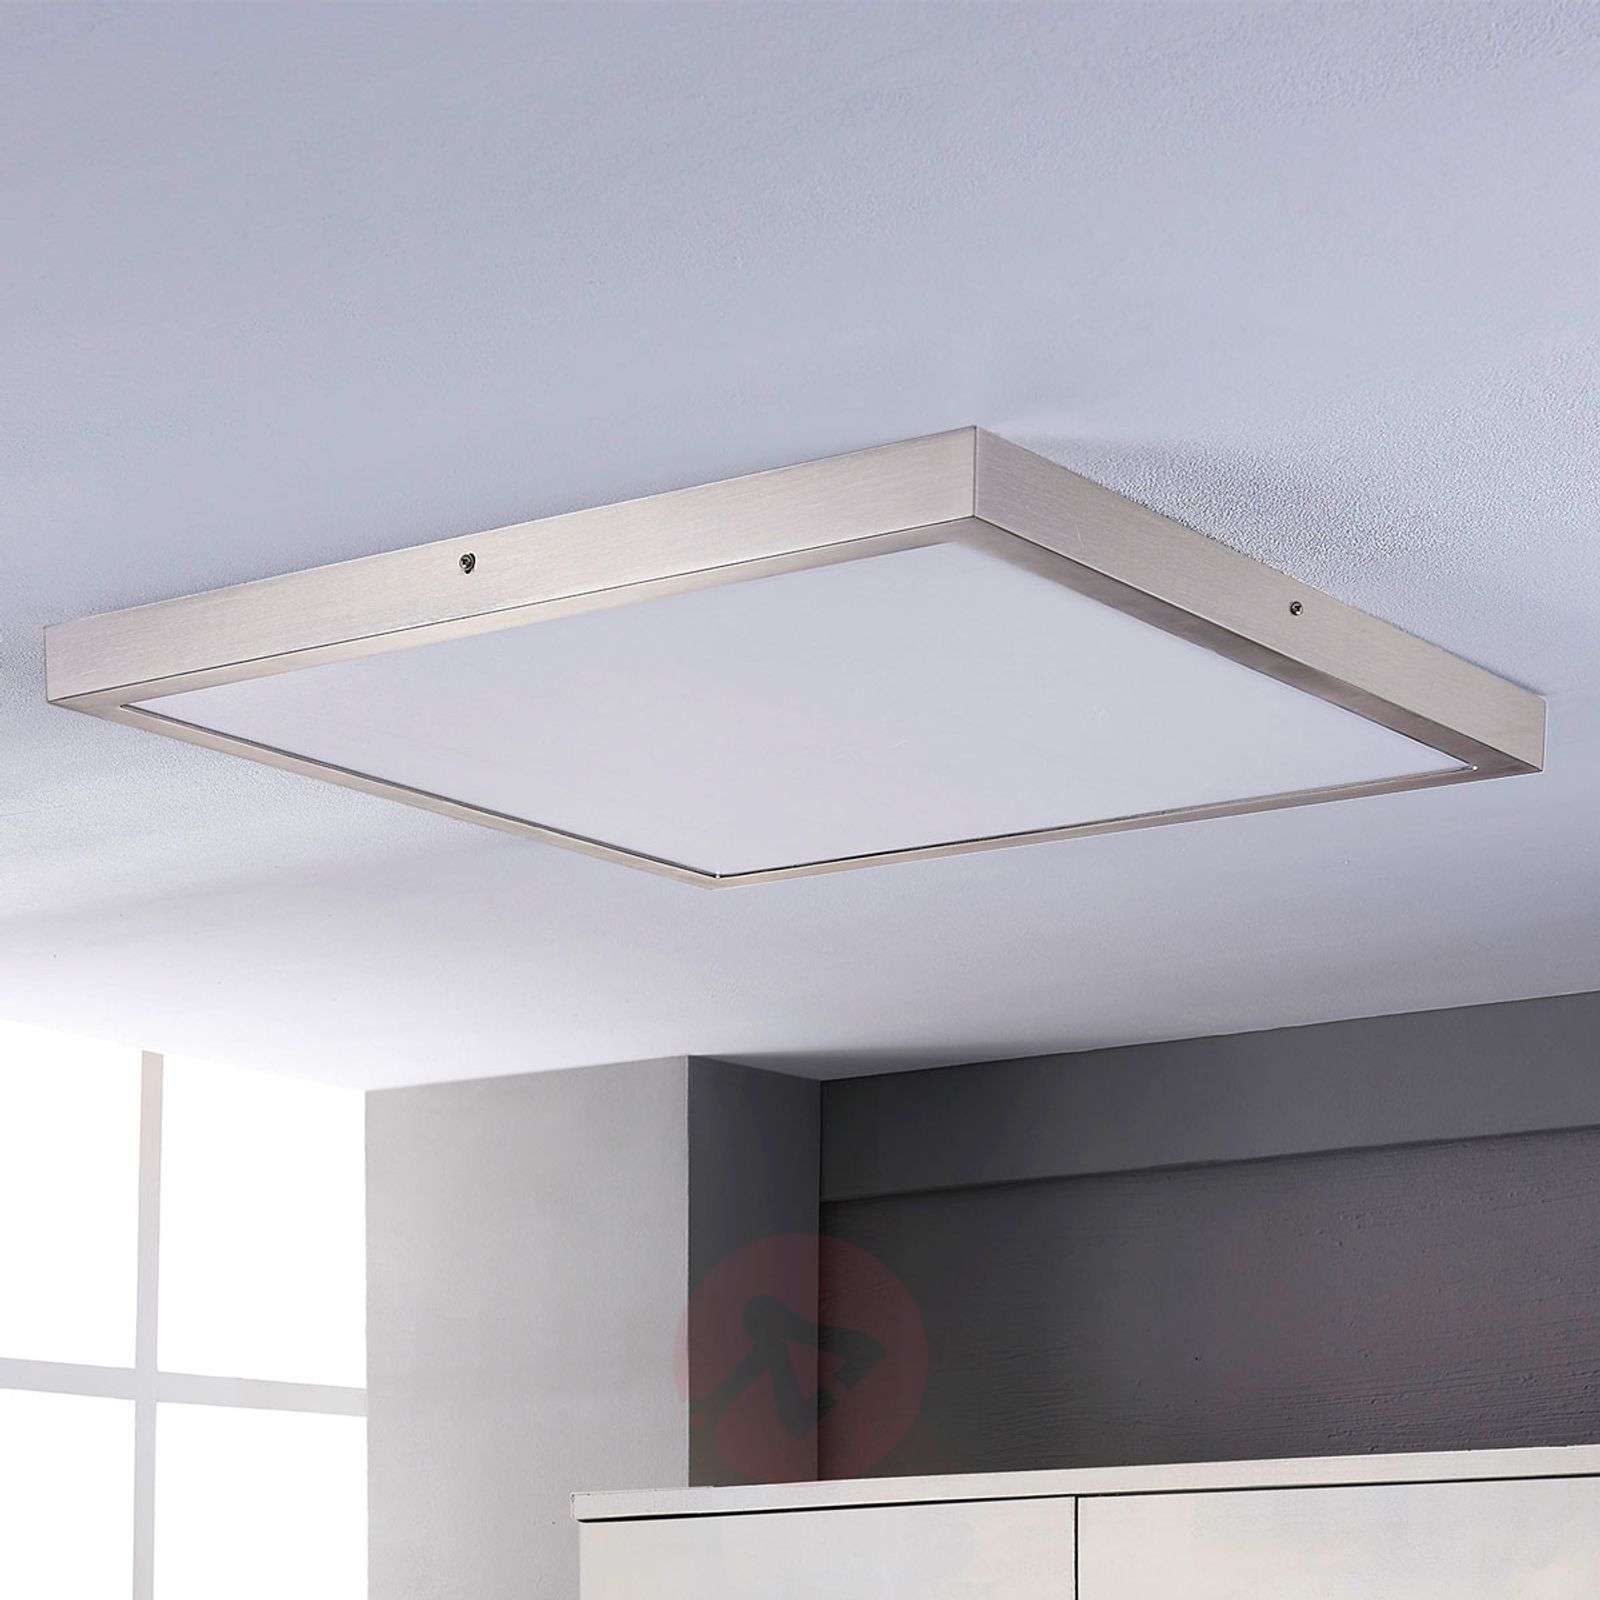 Plafoniere Led A Soffitto Moderno Dimmerabile : Acquista pannello led dimmerabile elice luce efficace lampade.it